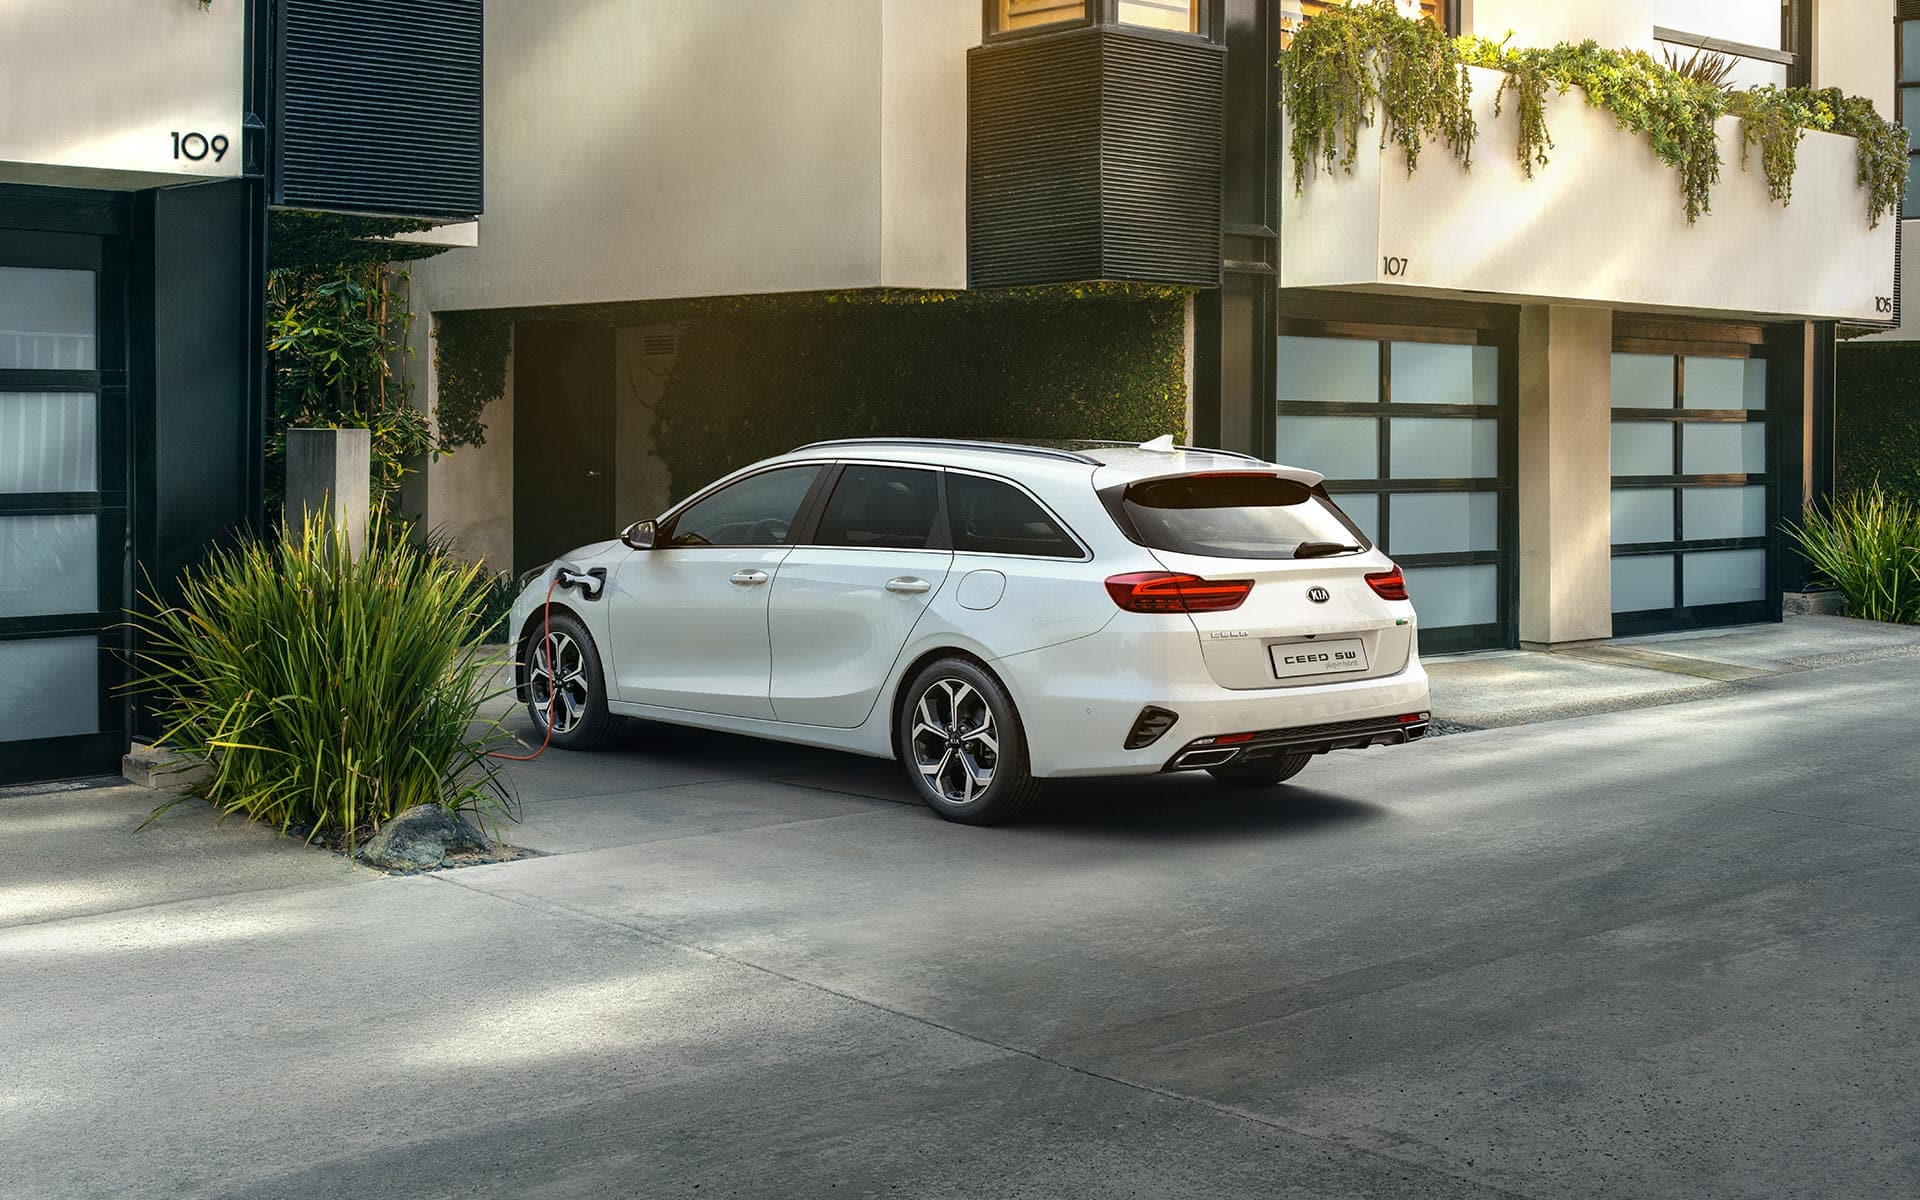 kia ceed sportswagon plug-in hybrid – laden